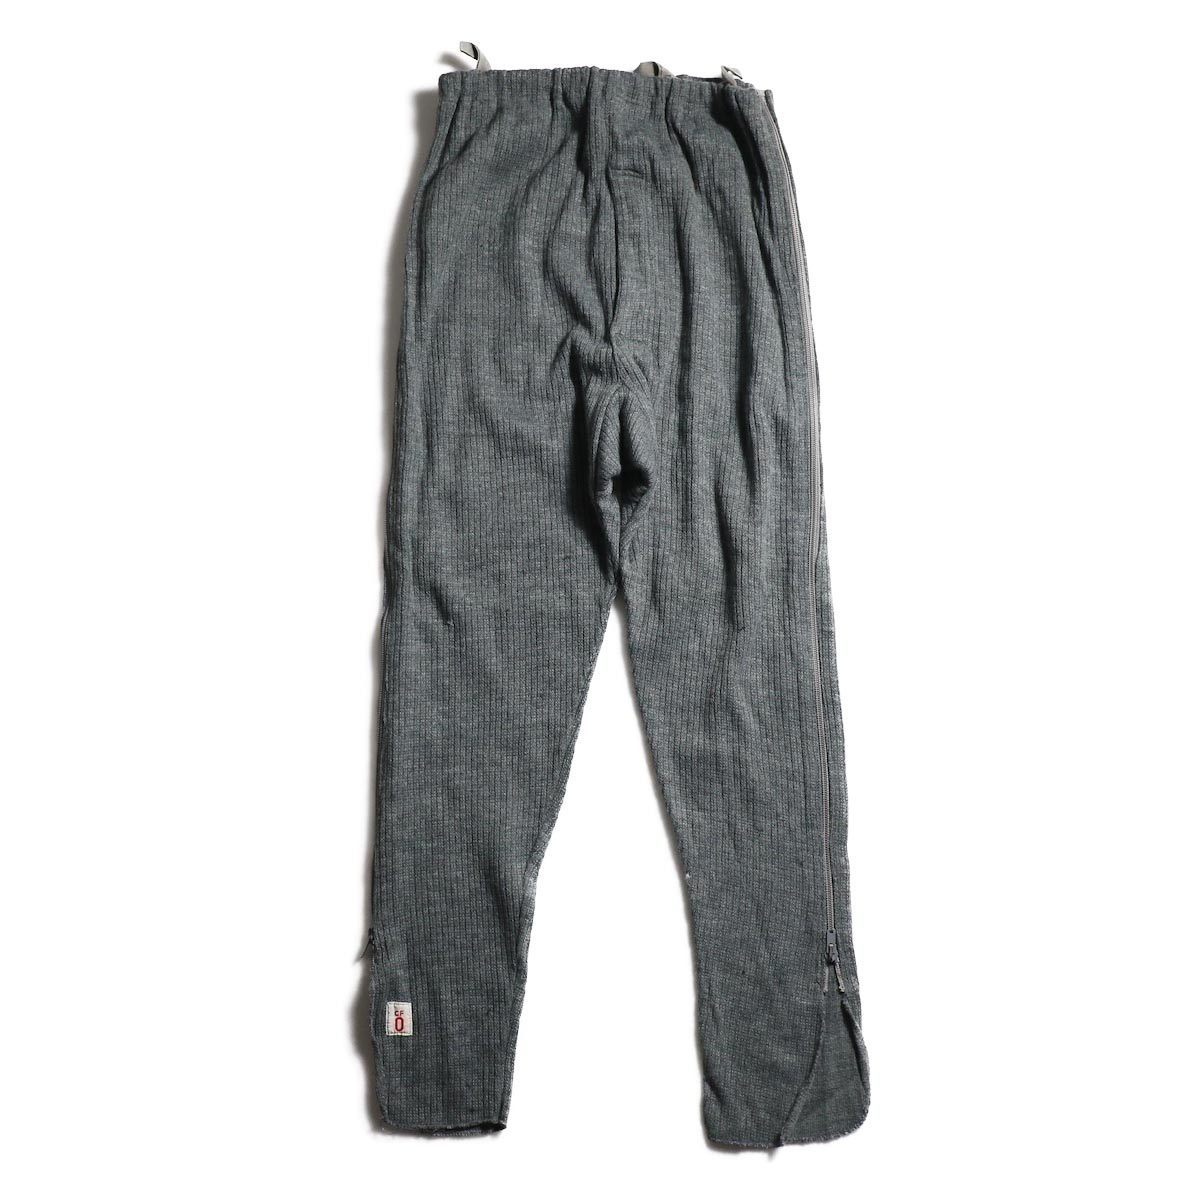 Denmark Military / Side Zip Under Pants (Small) C